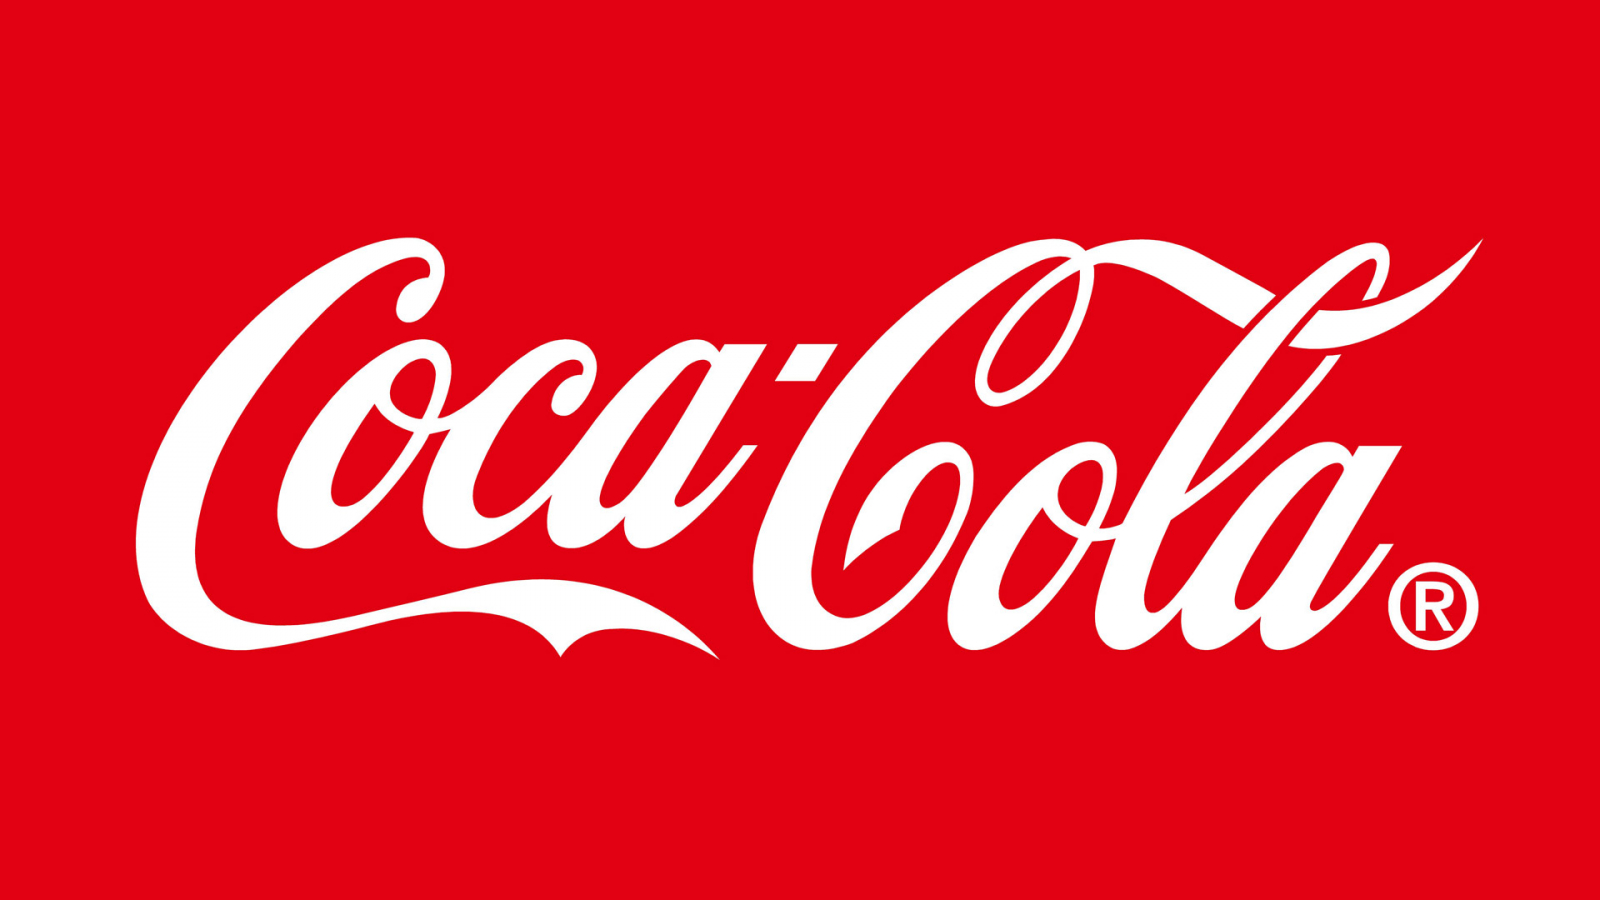 the four p s of marketing mix of coca cola Marketing mix 3 the four p's 3 product 3 place 4 price 5 promotion 6 marketing mix and the market plan 7 references 8 marketing mix the marketing mix revolves around the customer and their desires and/or needs.